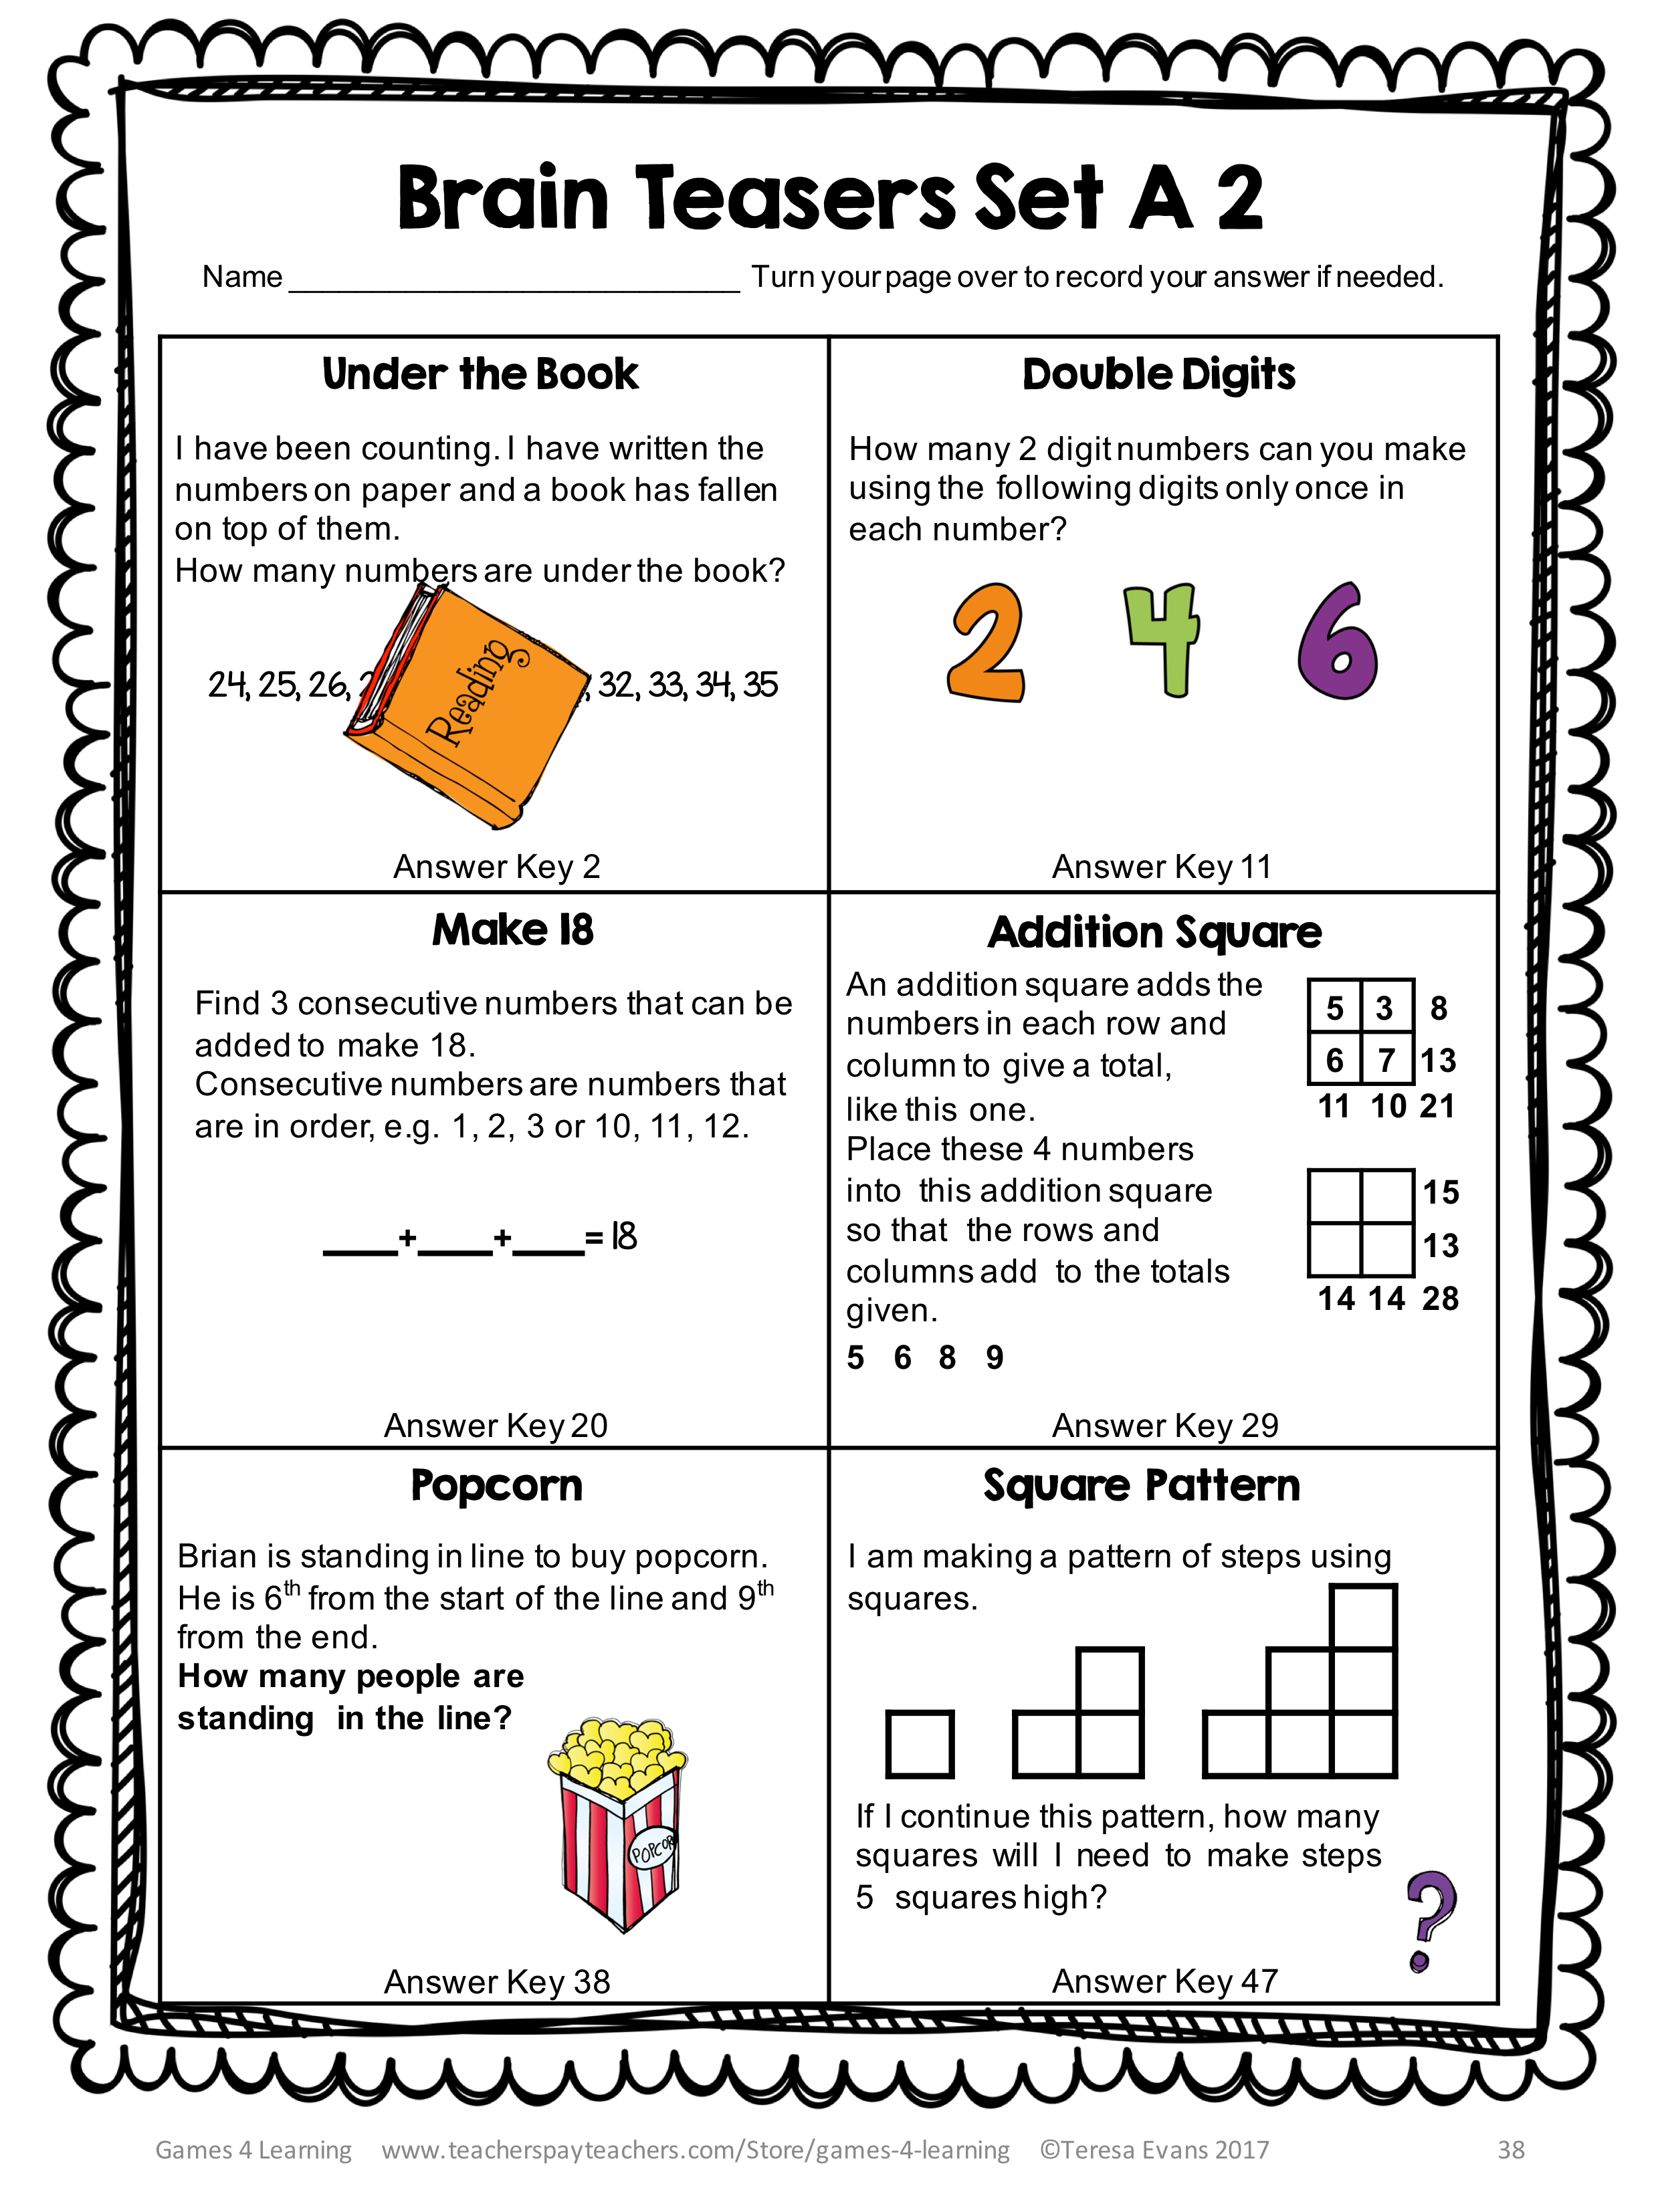 hight resolution of Printable Math Problems and Math Brain Teasers Cards from Games 4 Learning  contains 54 printable cards in large size